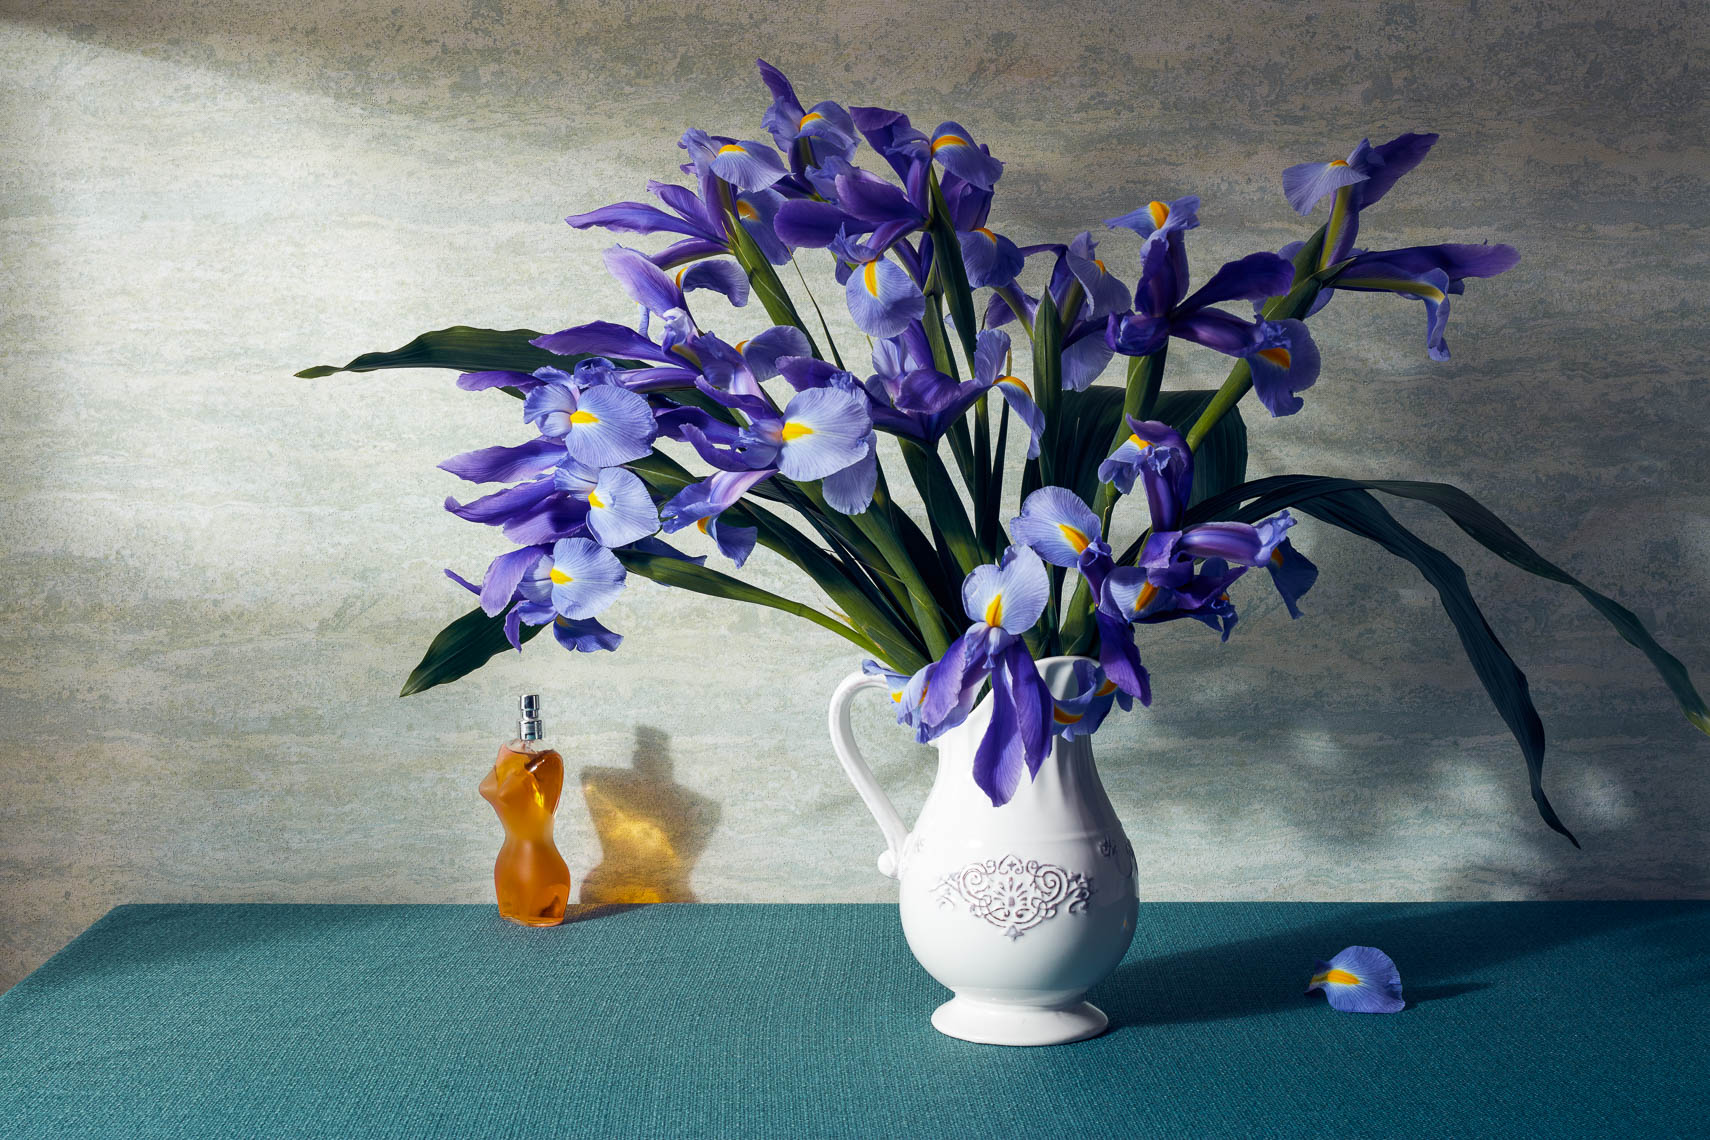 product photographer iris flowers and perfume still life photography with vase